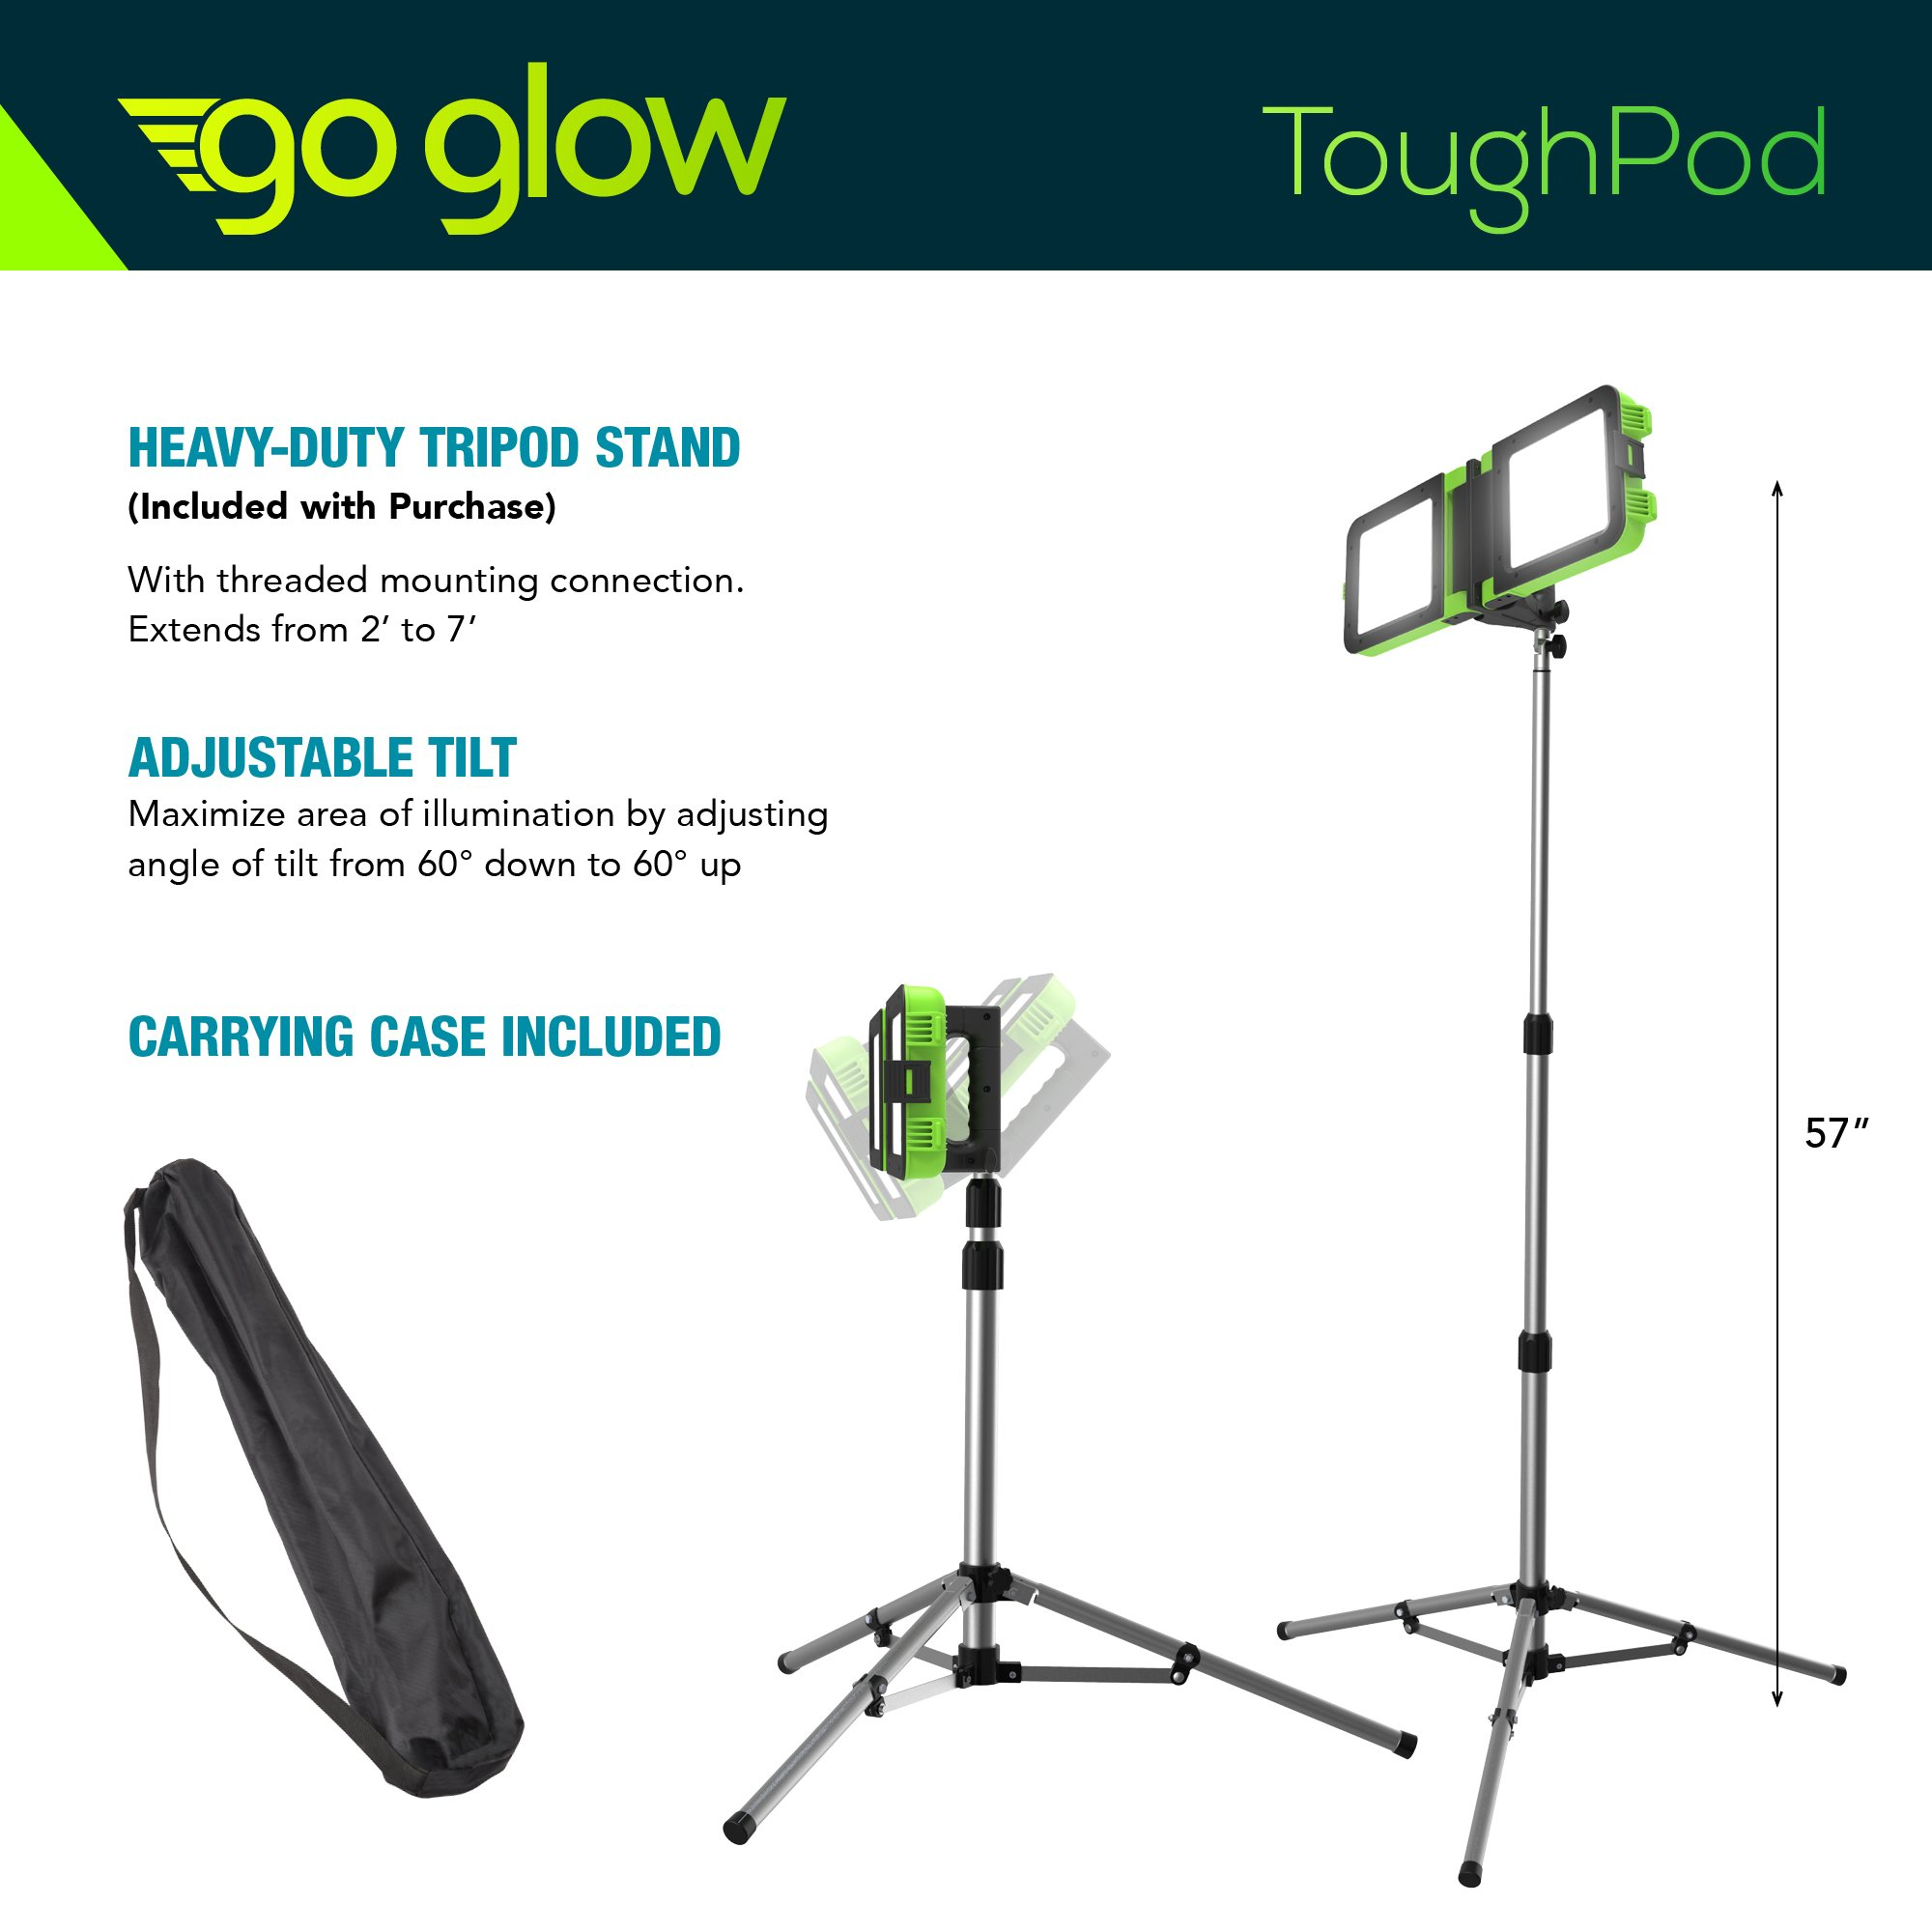 GoGlow LiteBook Bundle - Upgraded 2.0 TRIPOD INCLUDED - 30W Portable Rechargeable Day Light White Light (5000-5500k) Work Light, Camping, Garage or Auto Repair, Emergency (Green) by Enpower (Image #6)